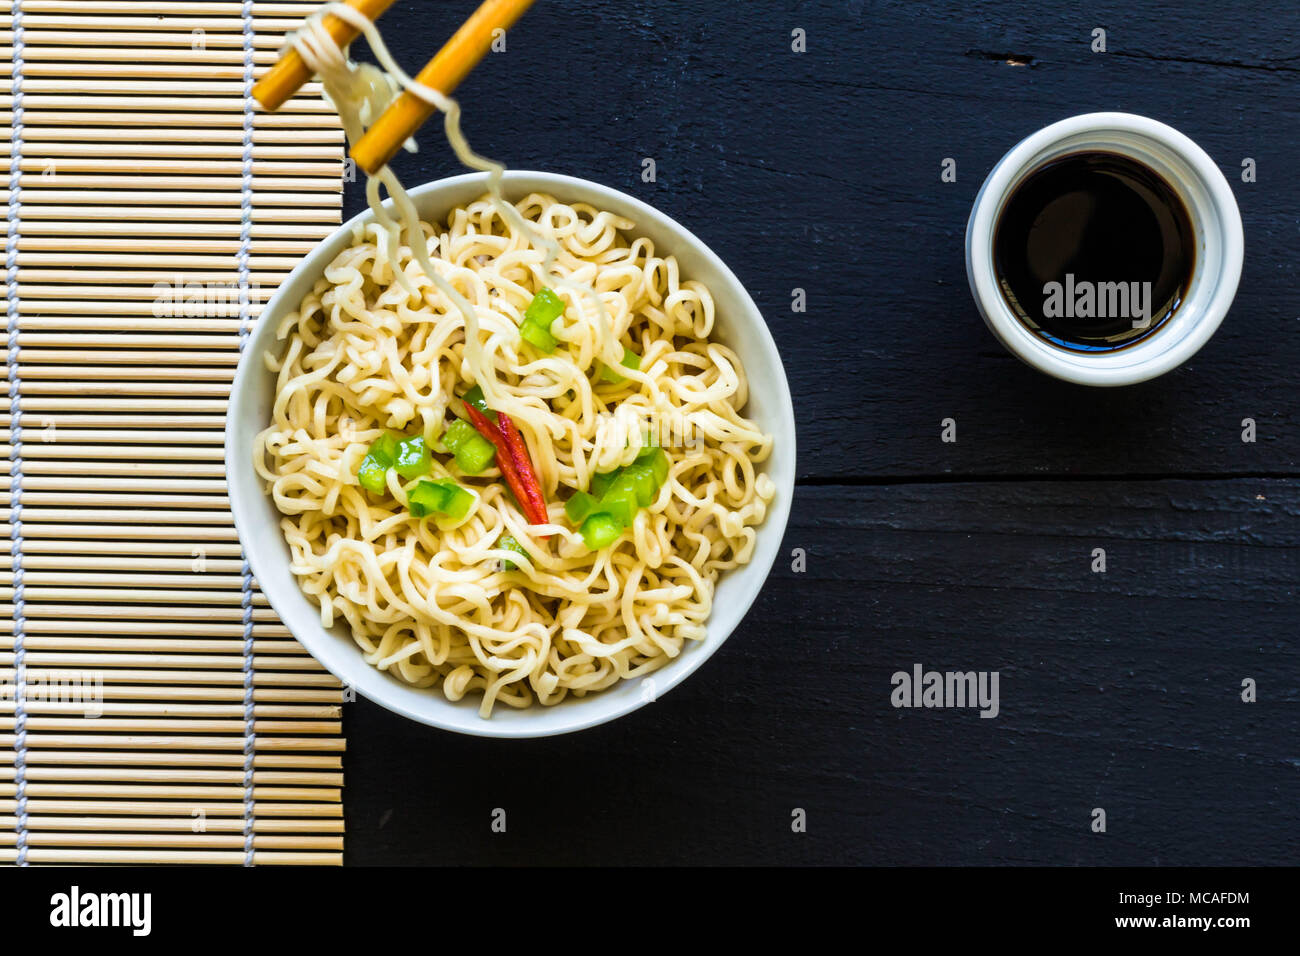 Bowl of instant cooked plain noodles with chopsticks and pepper garnish - Top view photo - Stock Image